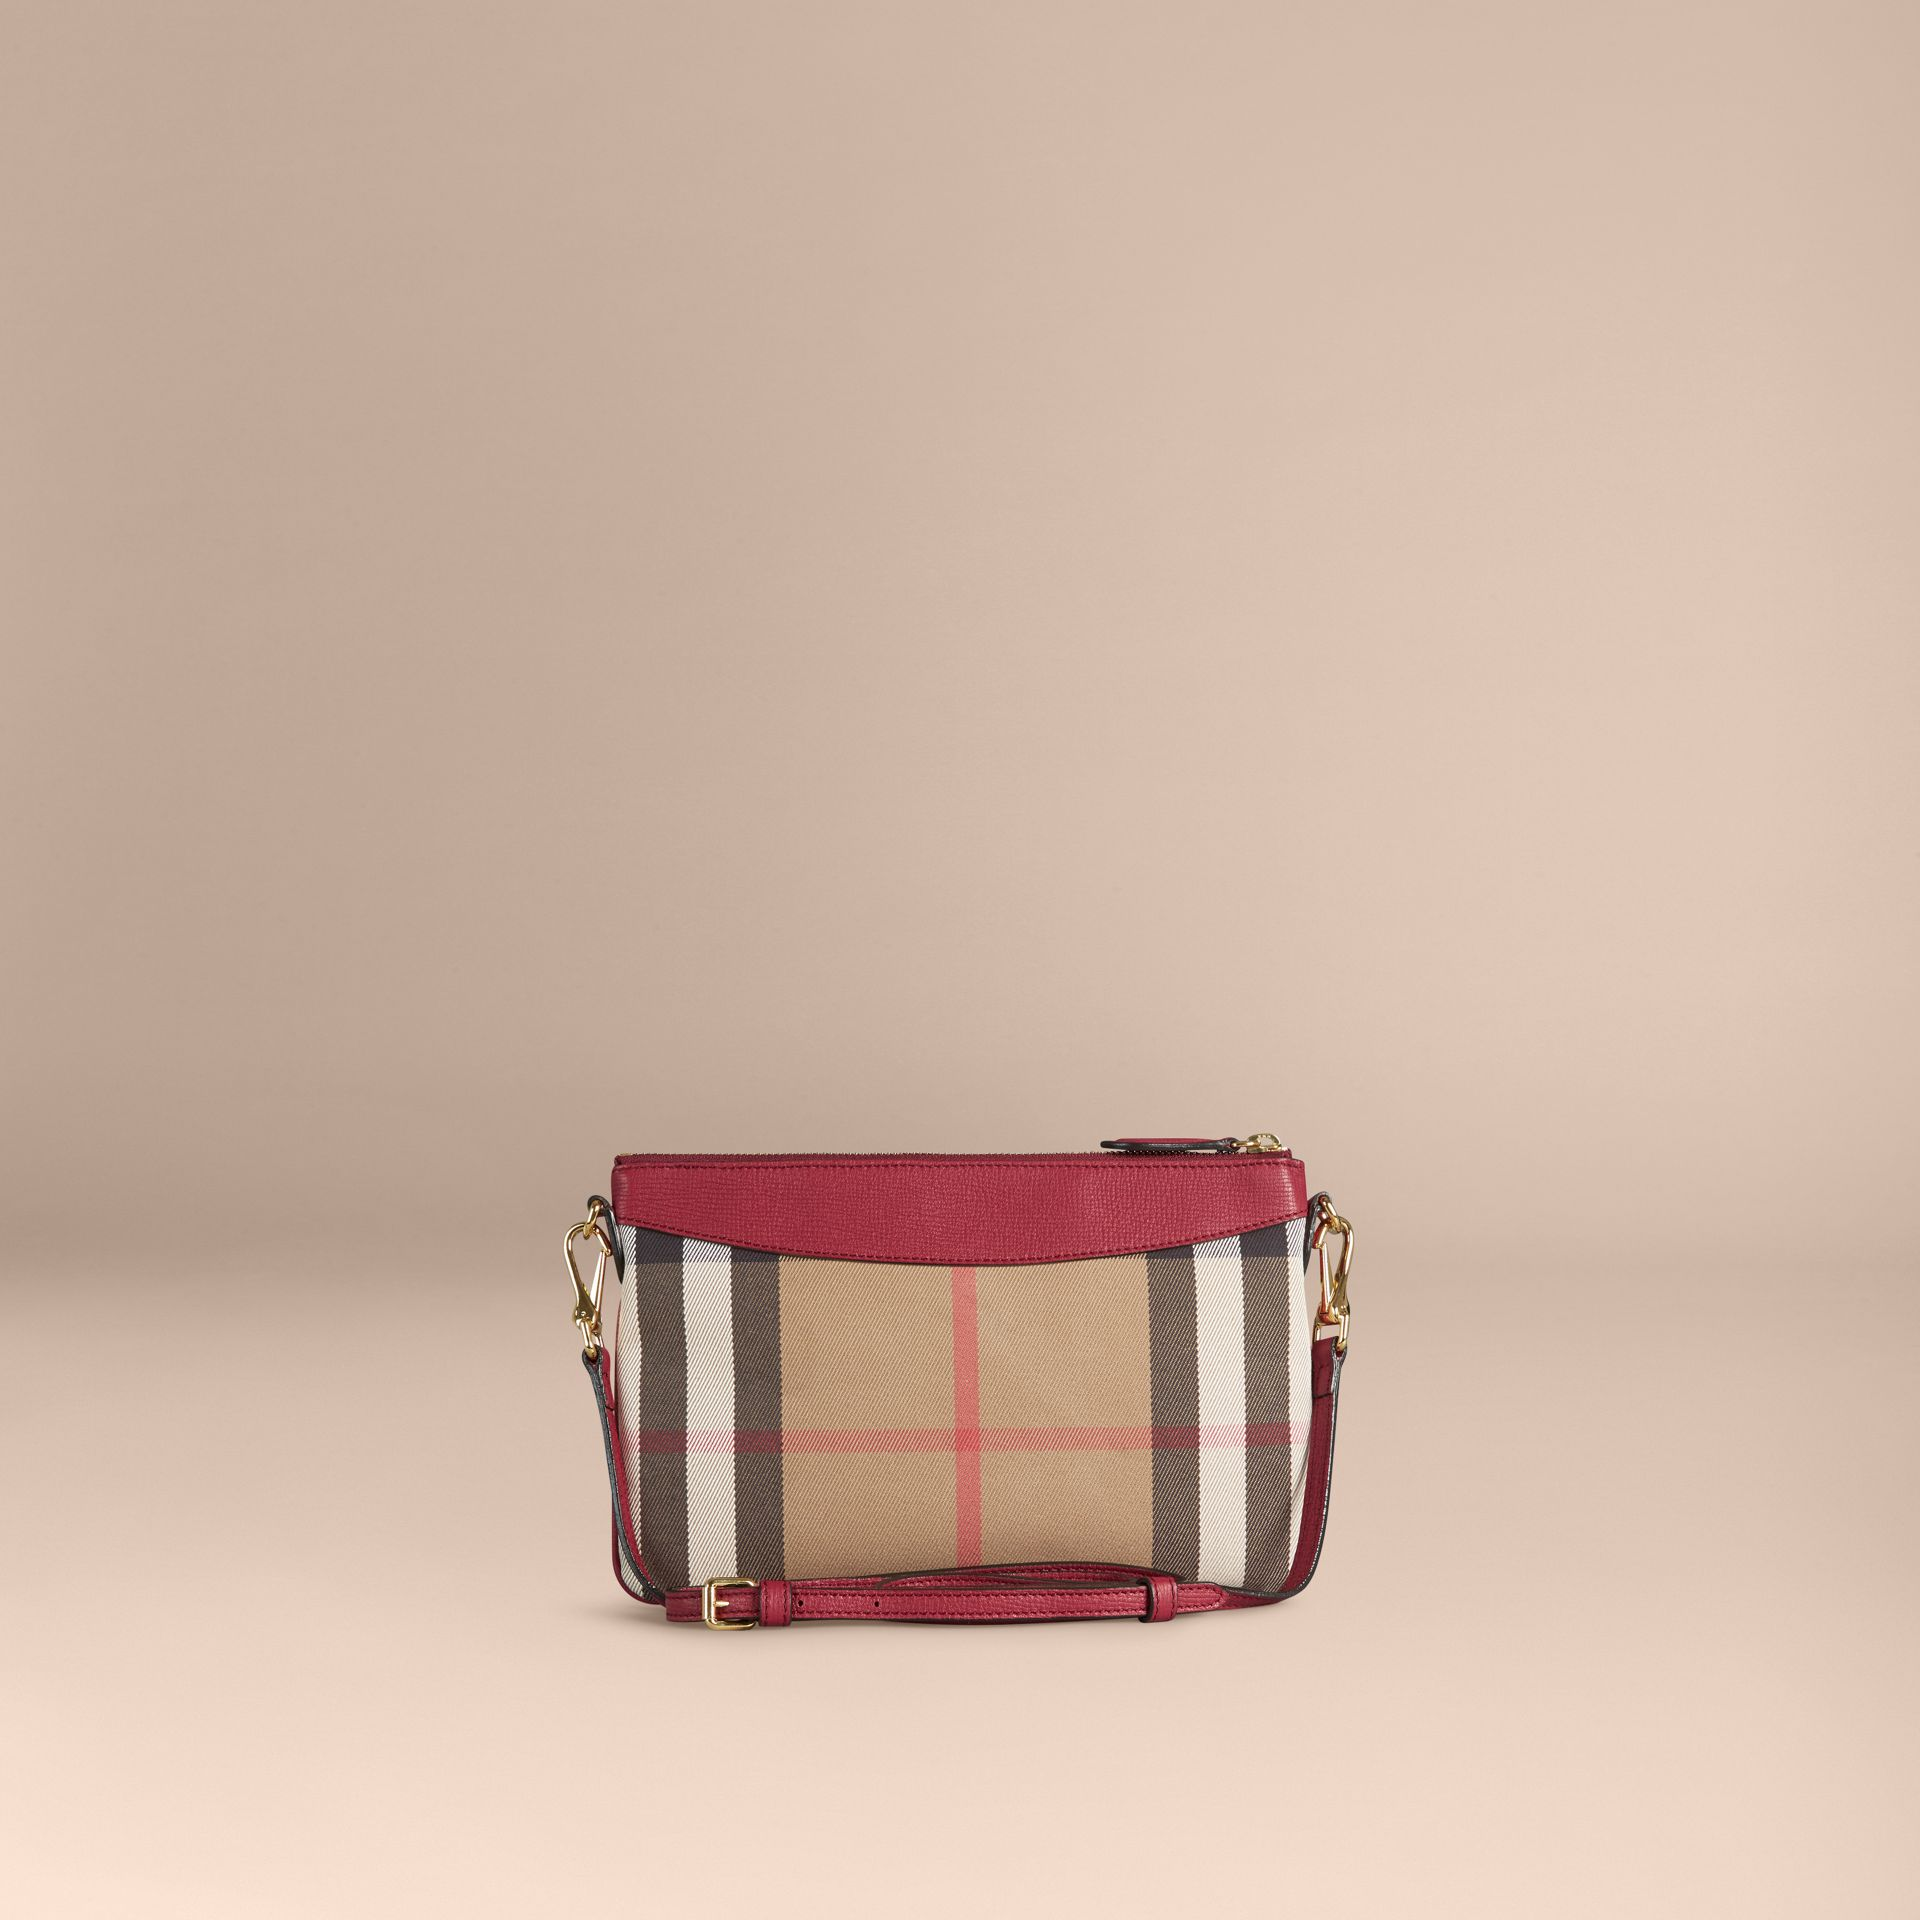 House Check and Leather Clutch Bag in Military Red - Women | Burberry - gallery image 2